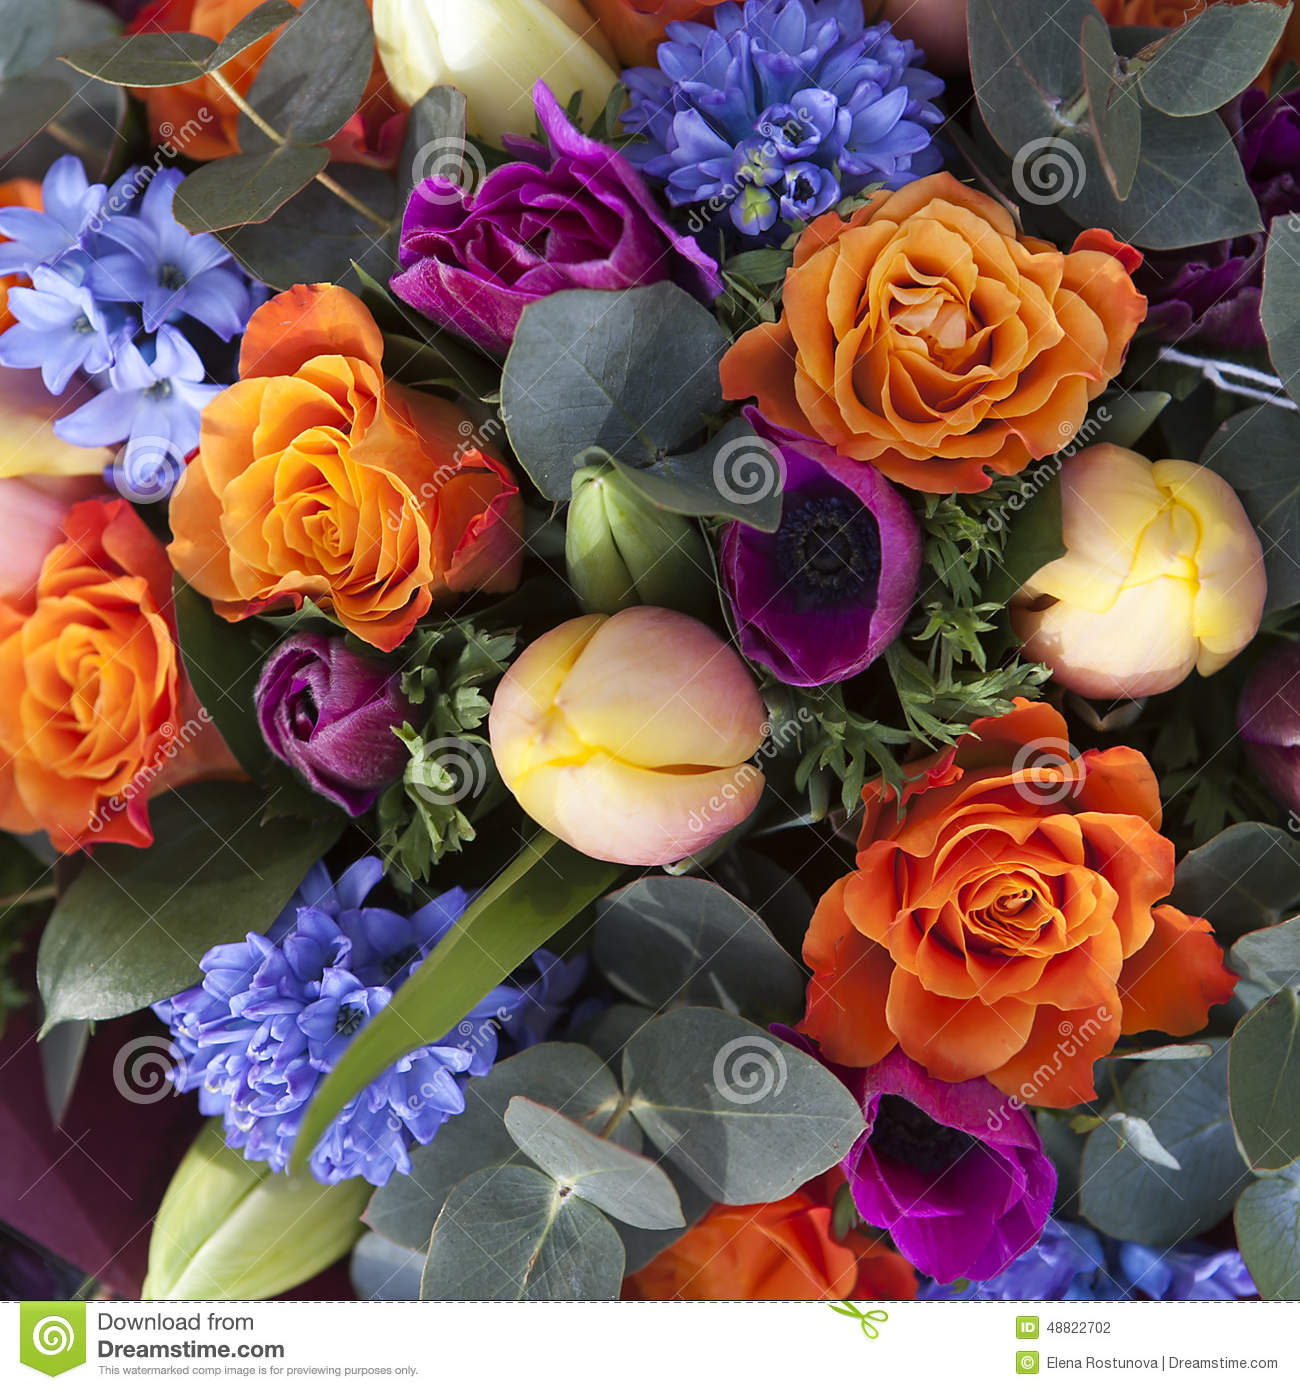 Bouquet Of Colorful Spring Flowers Tulip Ranunculus Hyacinth Daisy Anemone Stock Photo Image Of Bouquet Color 48822702